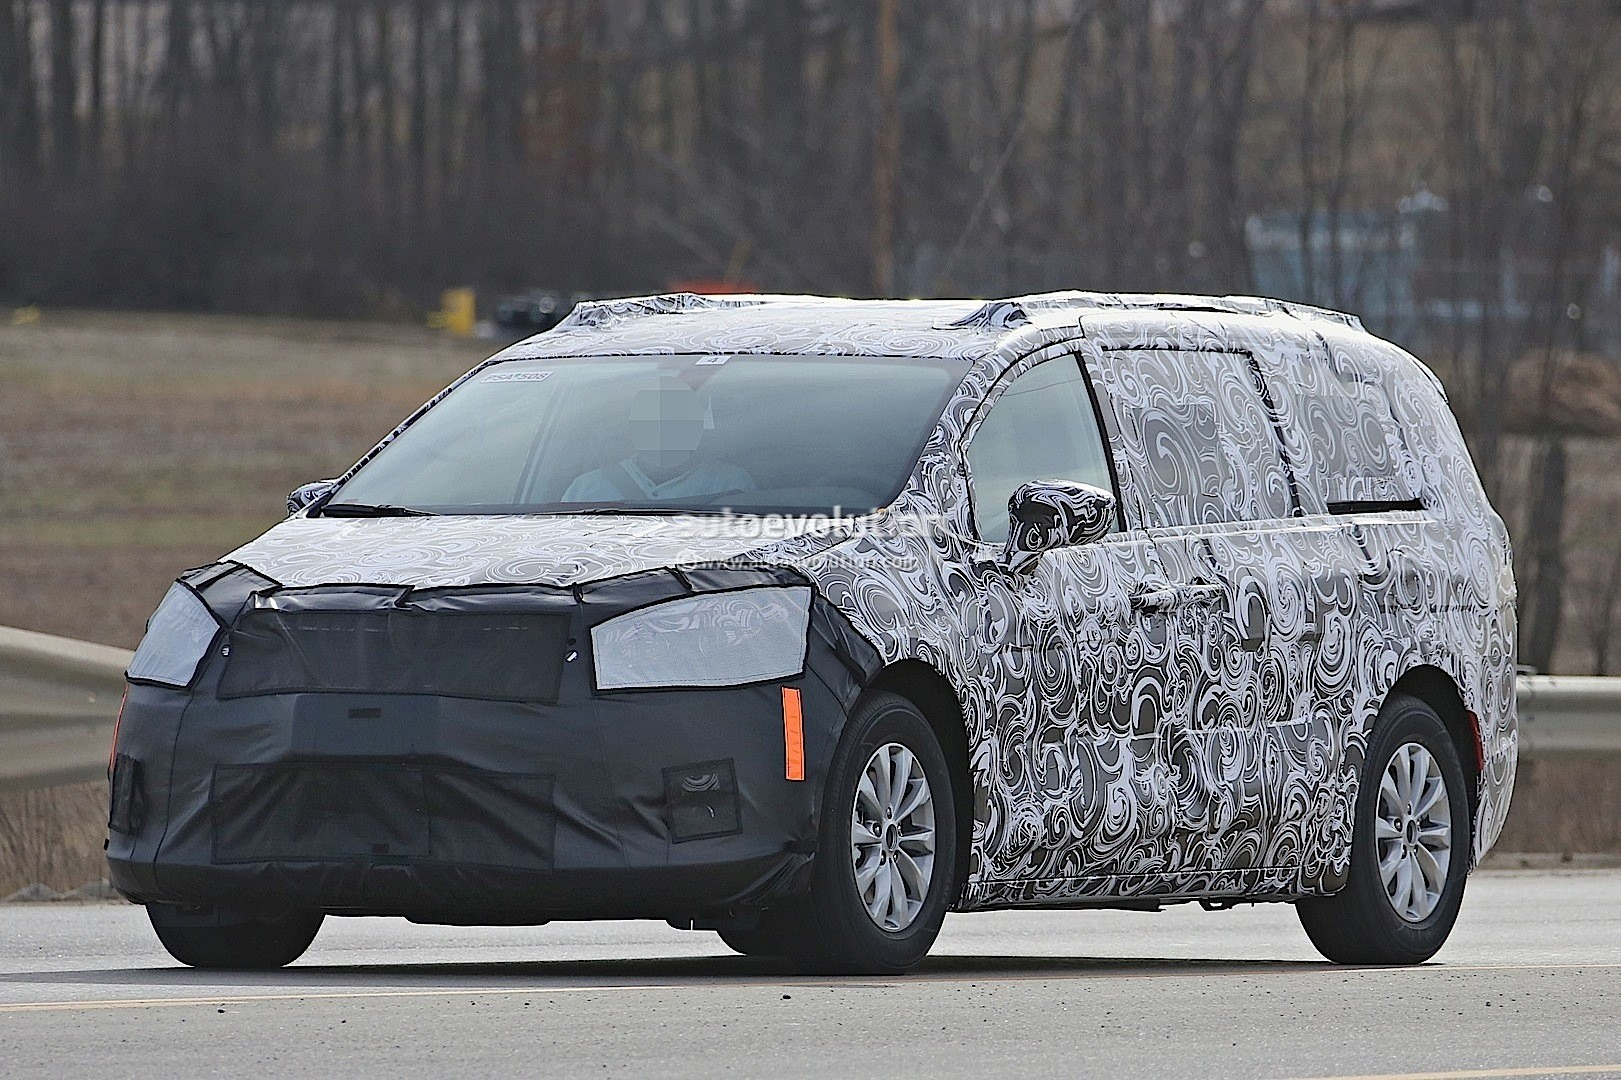 2017 chrysler town country silhouette revealed in latest spyshots autoevolution. Black Bedroom Furniture Sets. Home Design Ideas